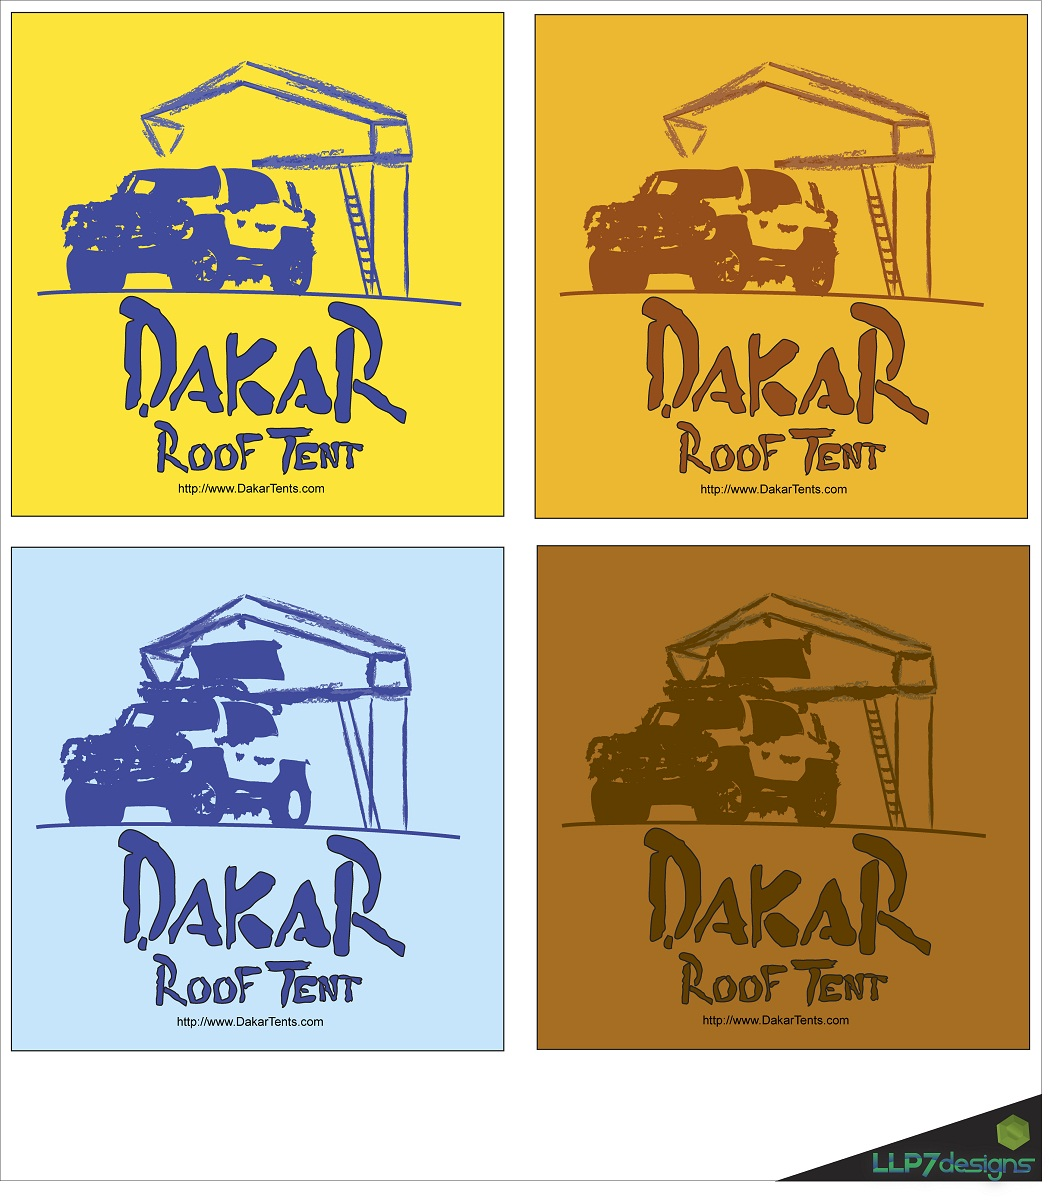 Logo Design by LLP7 - Entry No. 35 in the Logo Design Contest Dakar Roof Tents.